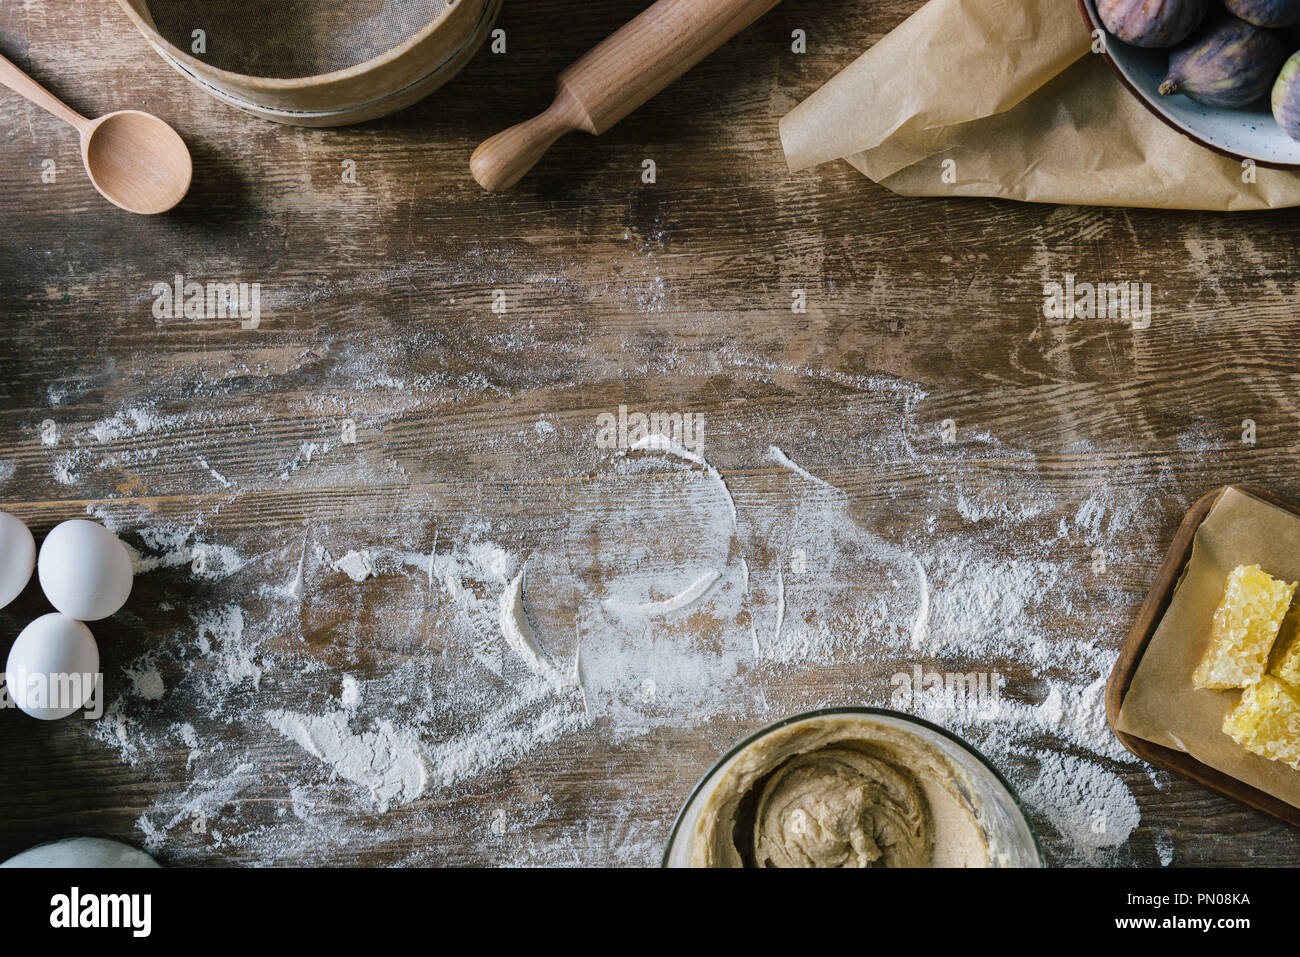 top view of messy rustic wooden table with spilled flour and baking ingredients - Stock Image